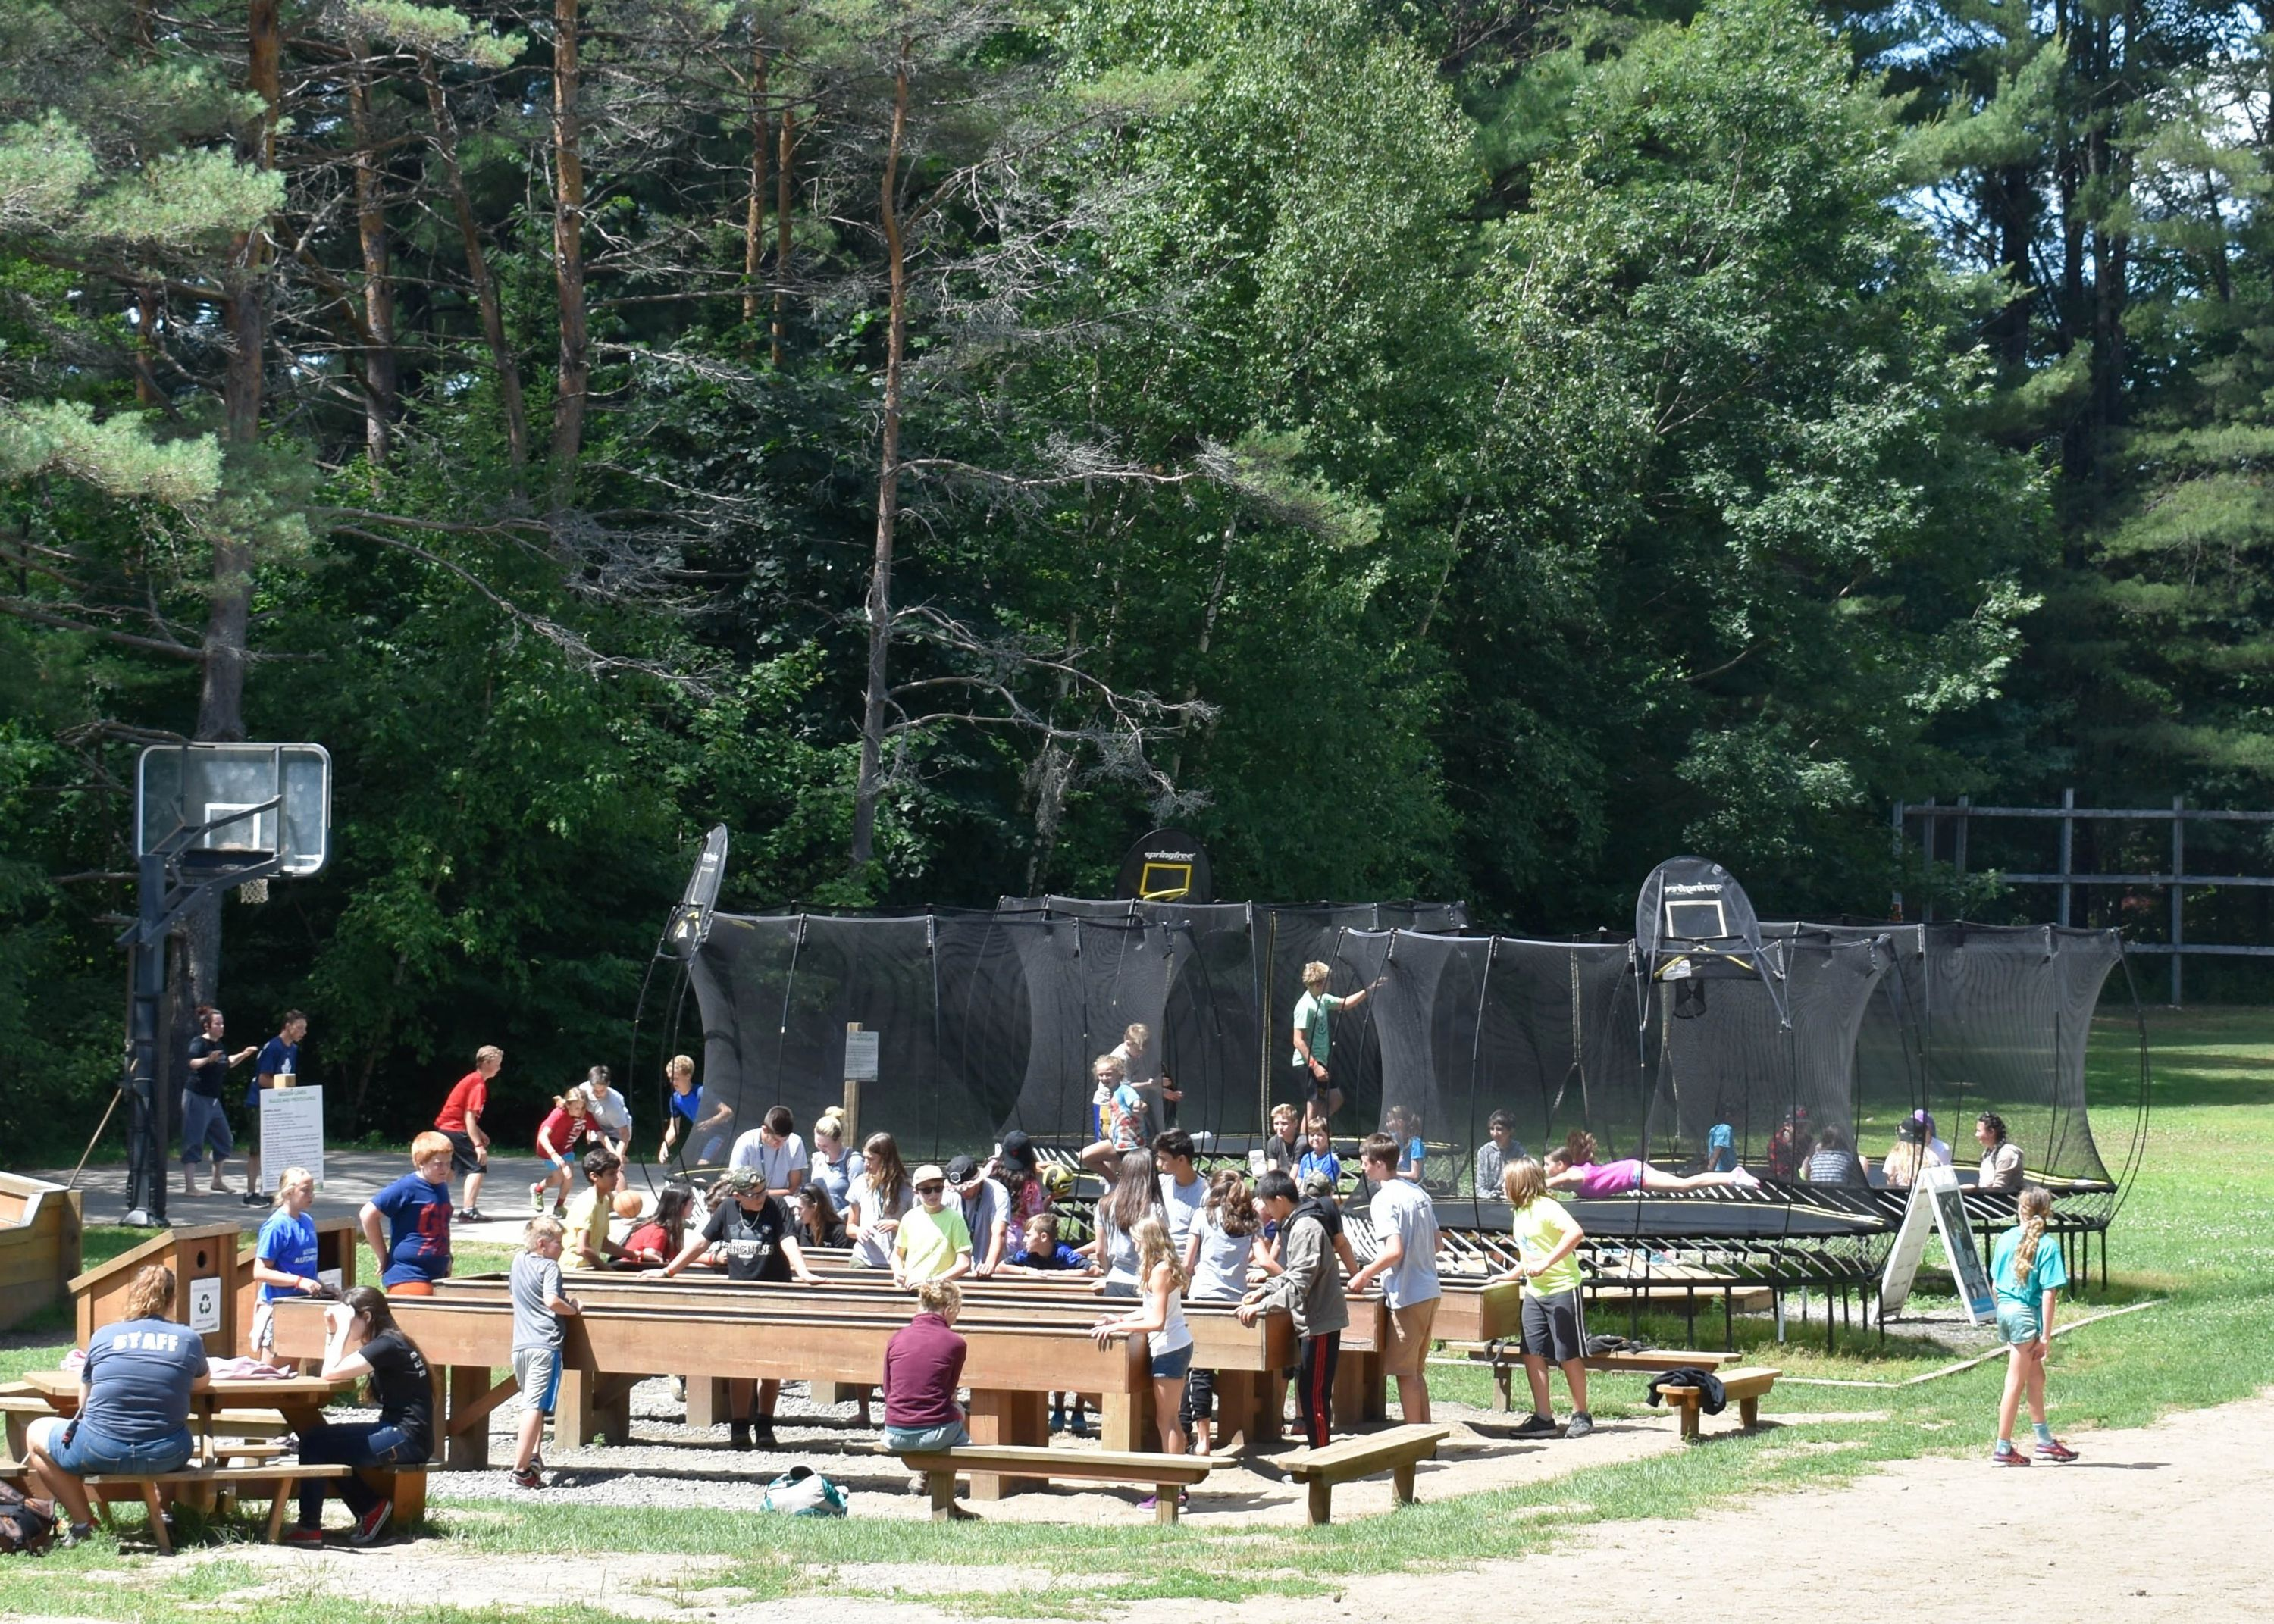 Lots of campers playing in park - trampolines, basketball, octaball, medeba lanes - at christian adventure summer camp in haliburton, Ontario